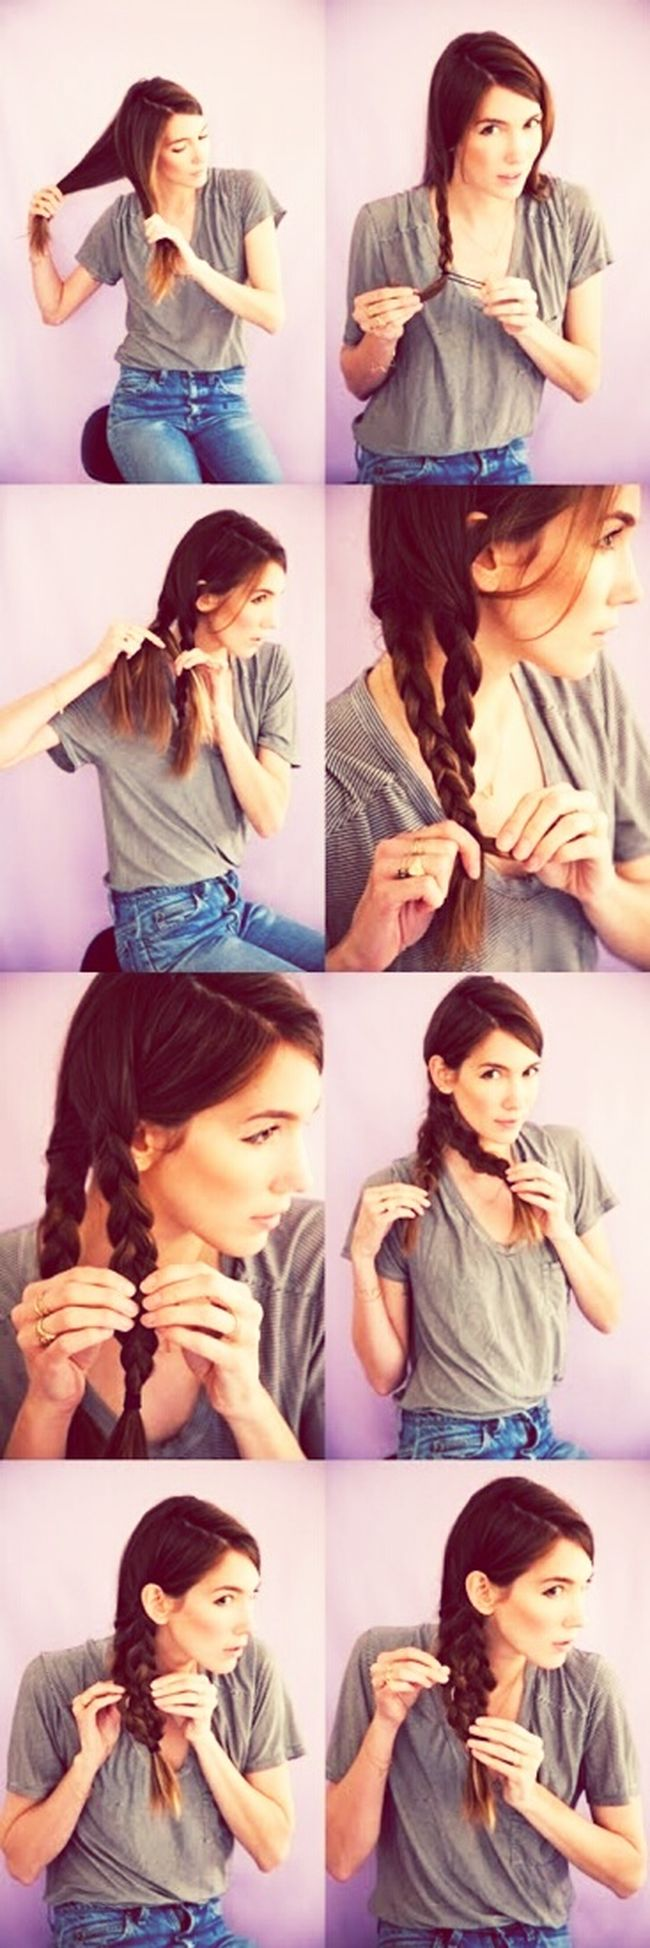 Hey, it's Monday Jojobeautytips DIY Handmade Tips Hairstyle Hair Beauty Check This Out How To Make Check This Out